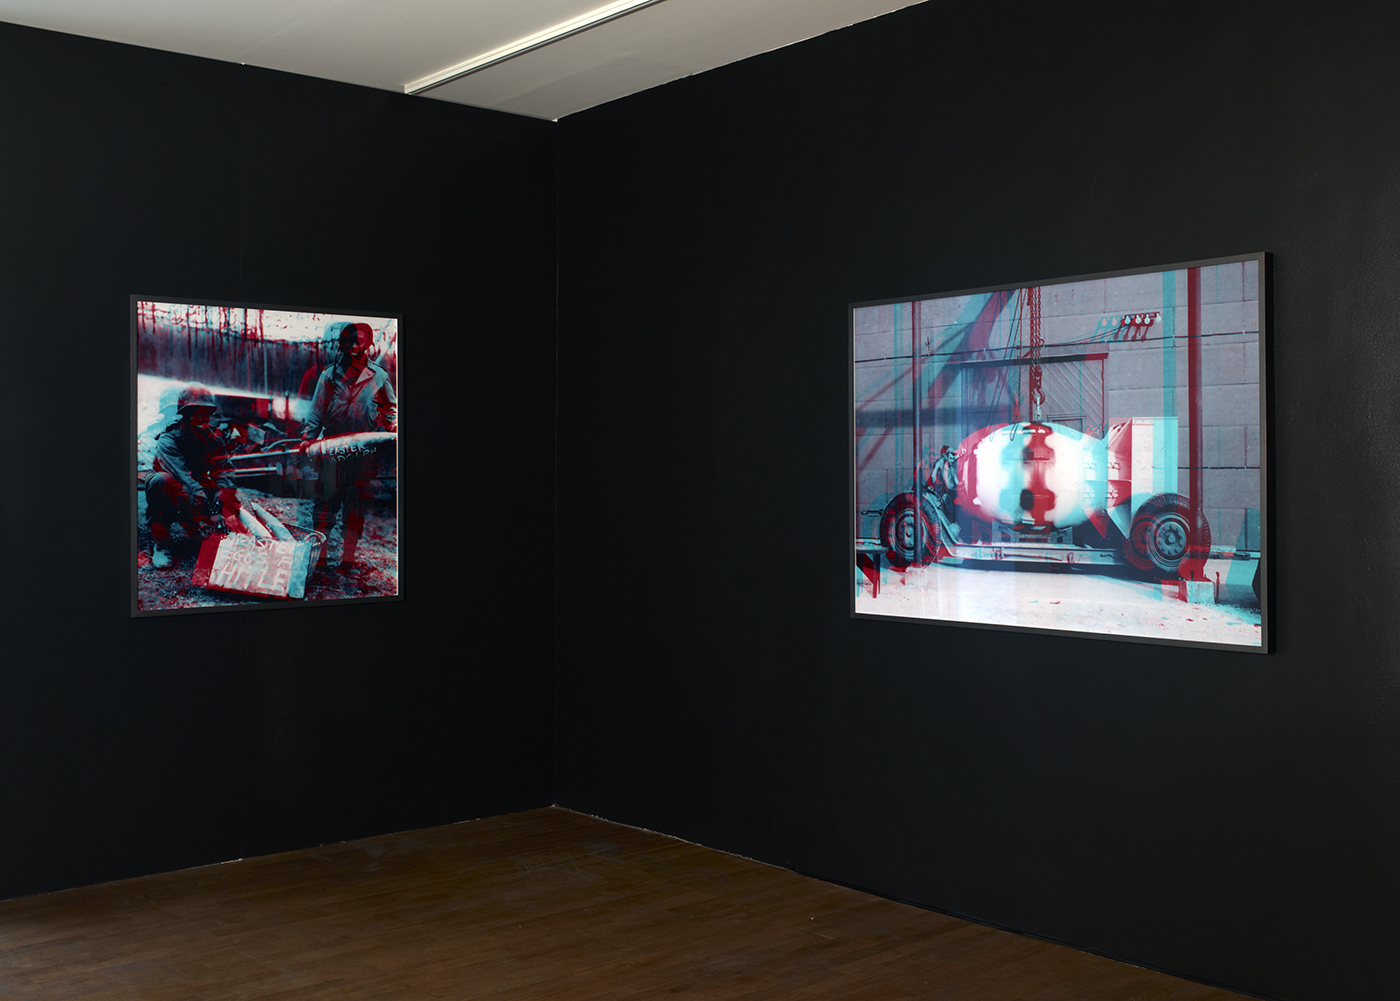 Exhibition view - I was There, Galerie in situ - Fabienne Leclerc, Paris, 2012